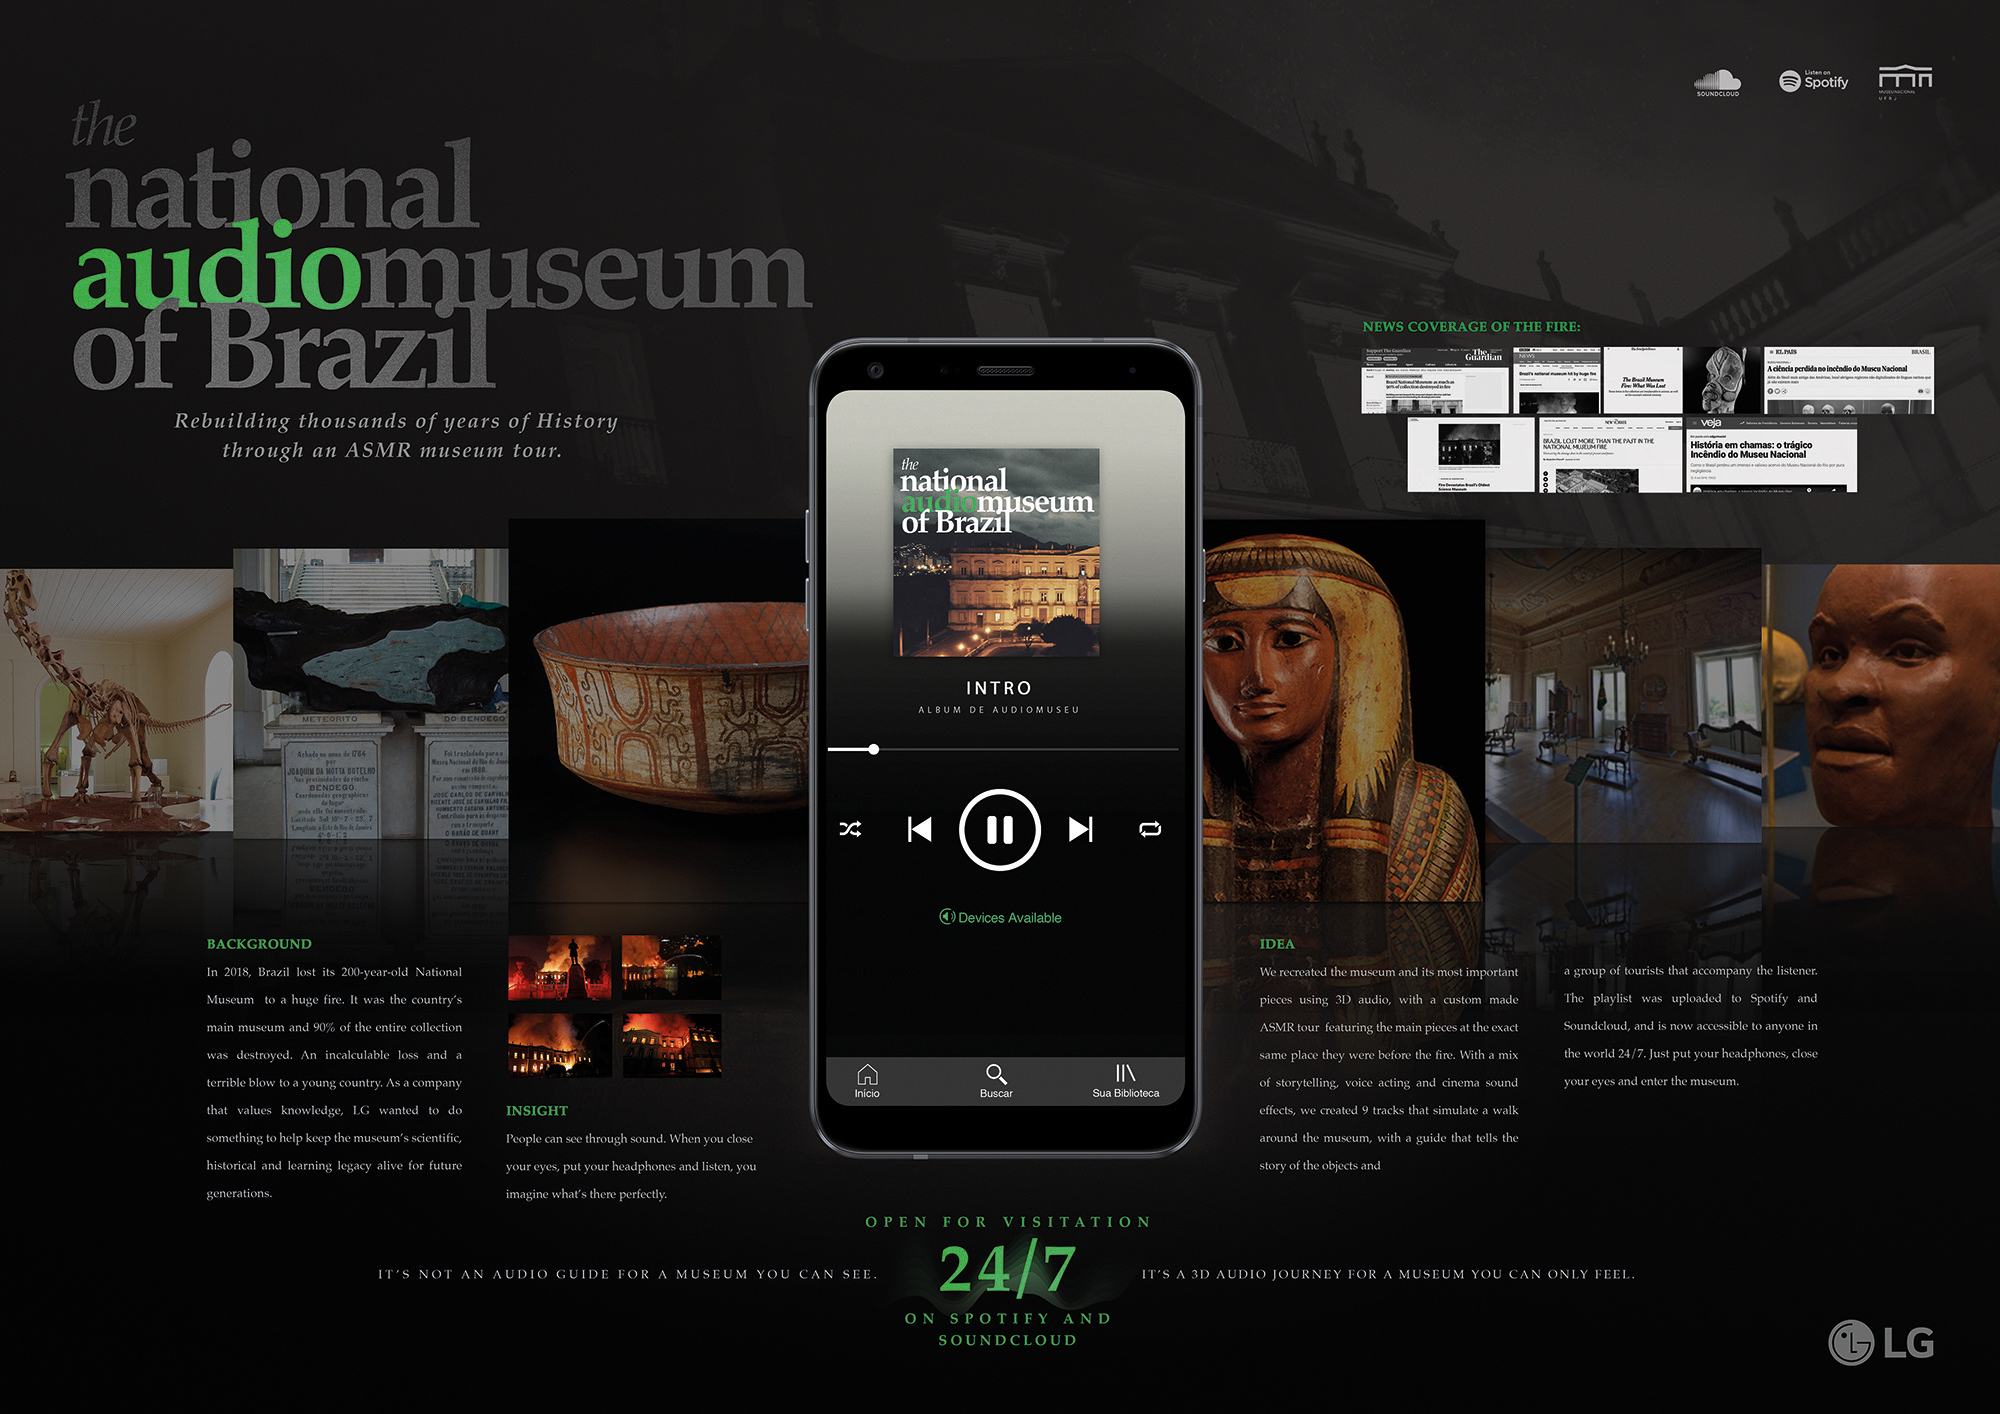 LG_The-National-Audiomuseum-of-Brazil-copy---light-web.jpg